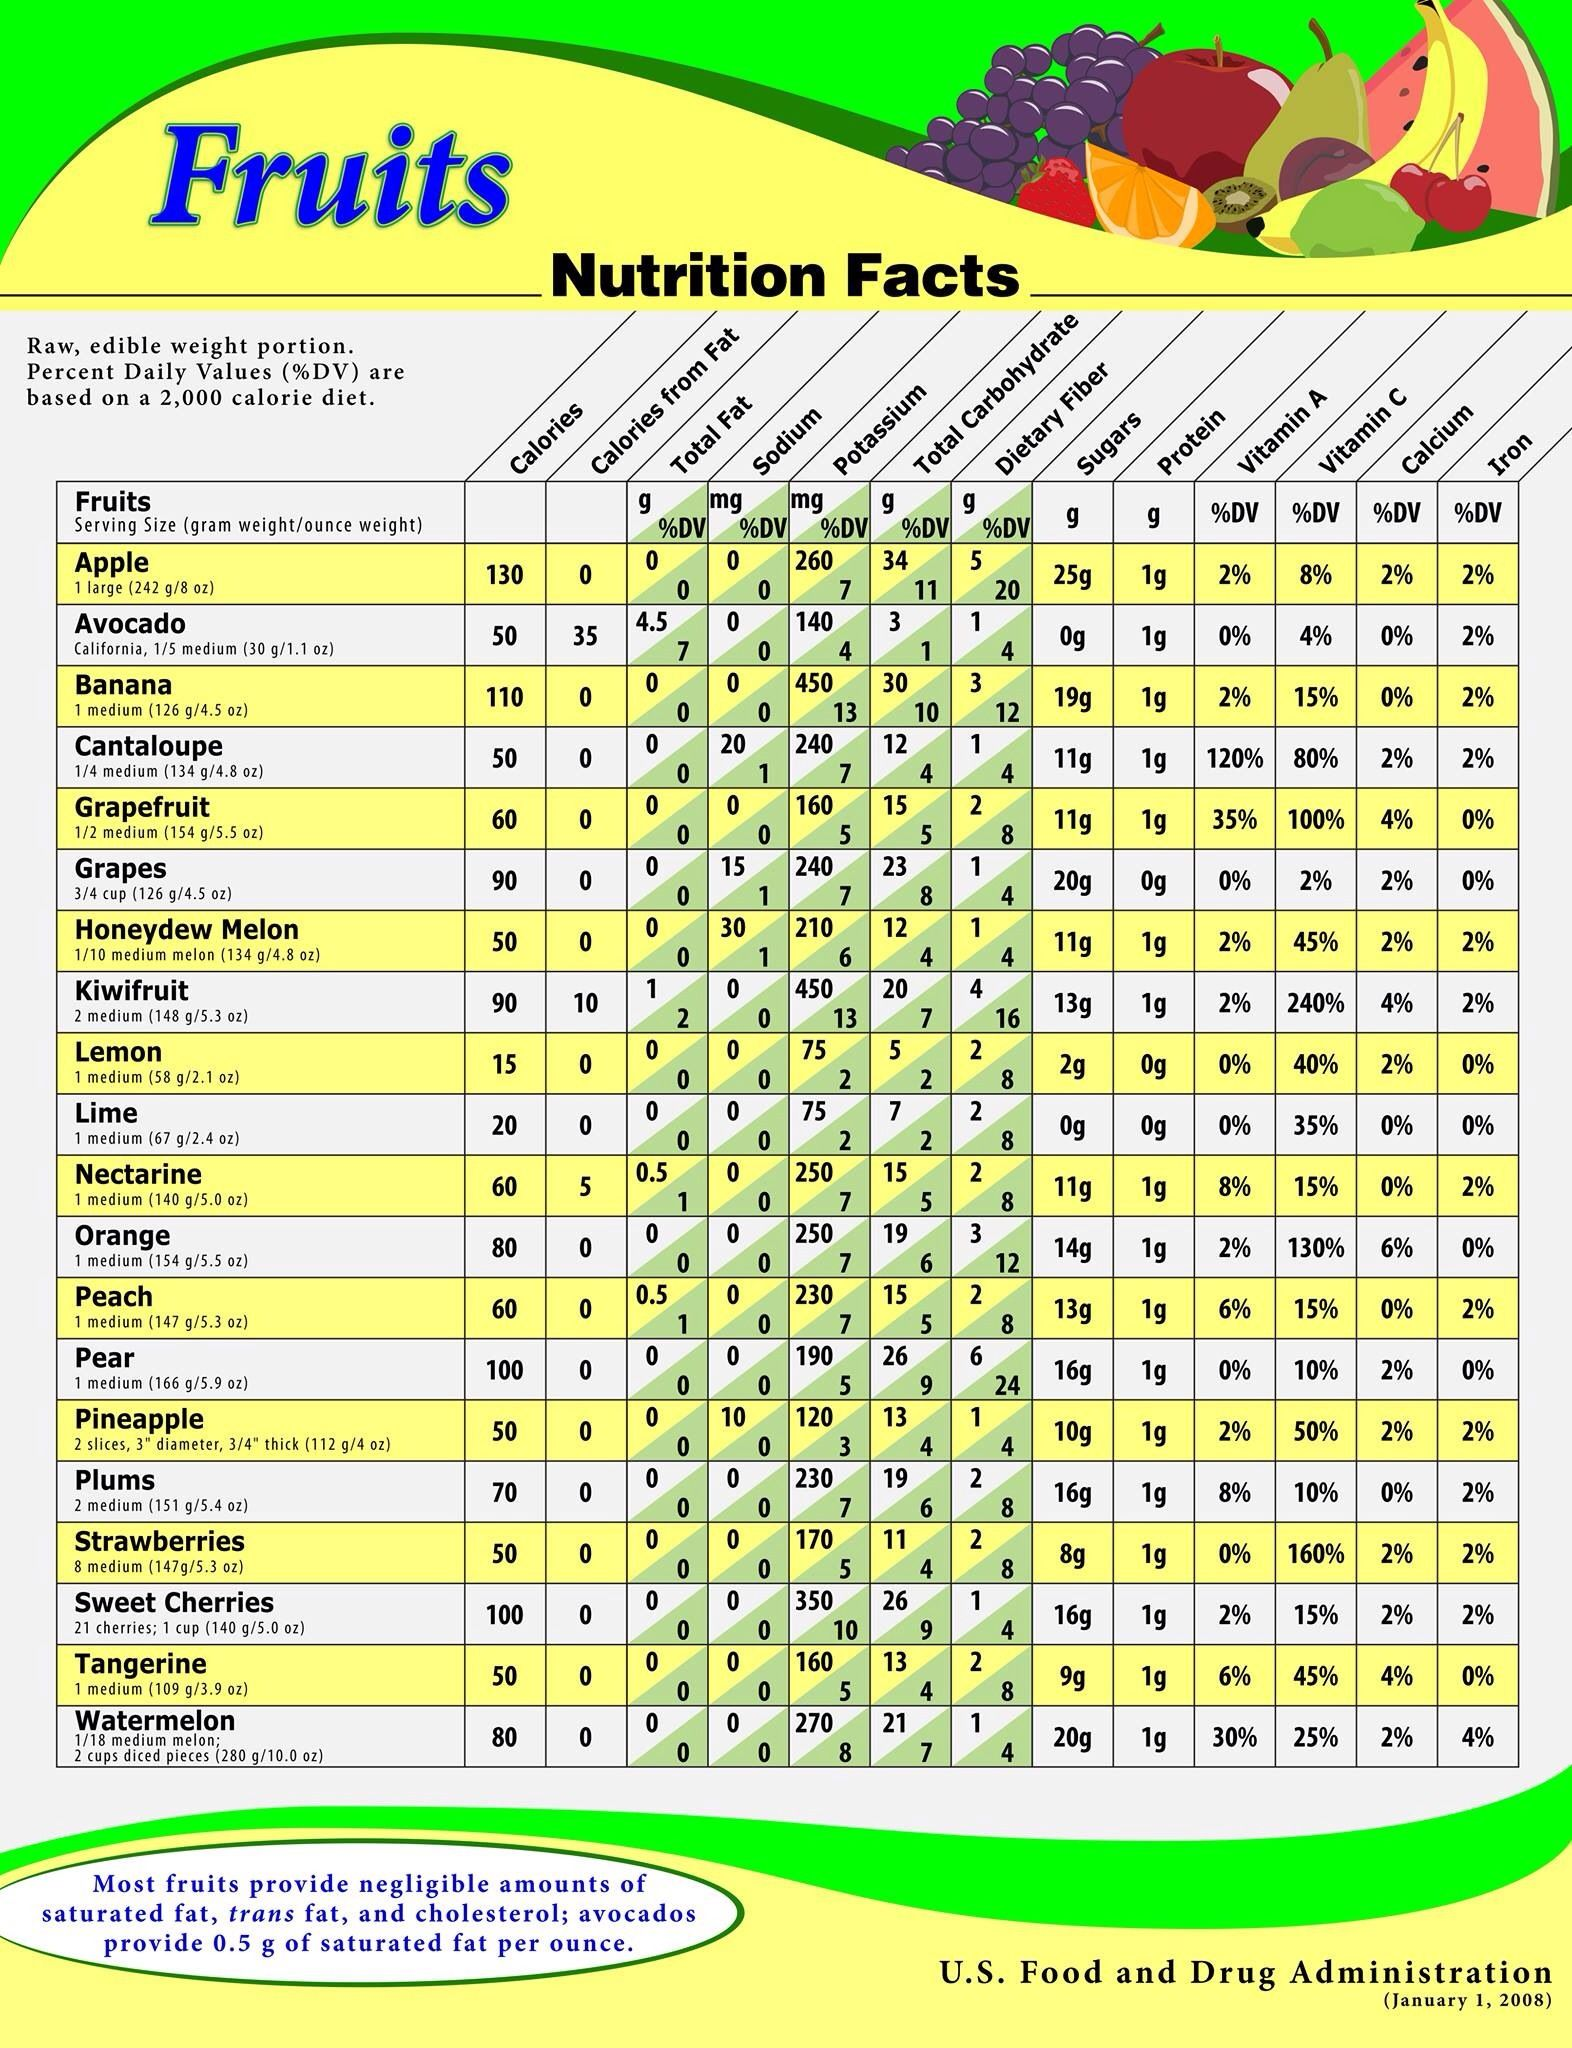 Please Dont Be Afraid Of The Sugar Content In Fruit Our Cells Need It Fruit Sugar I Fruit Nutrition Facts Vegetable Nutrition Facts Vegetable Calorie Chart